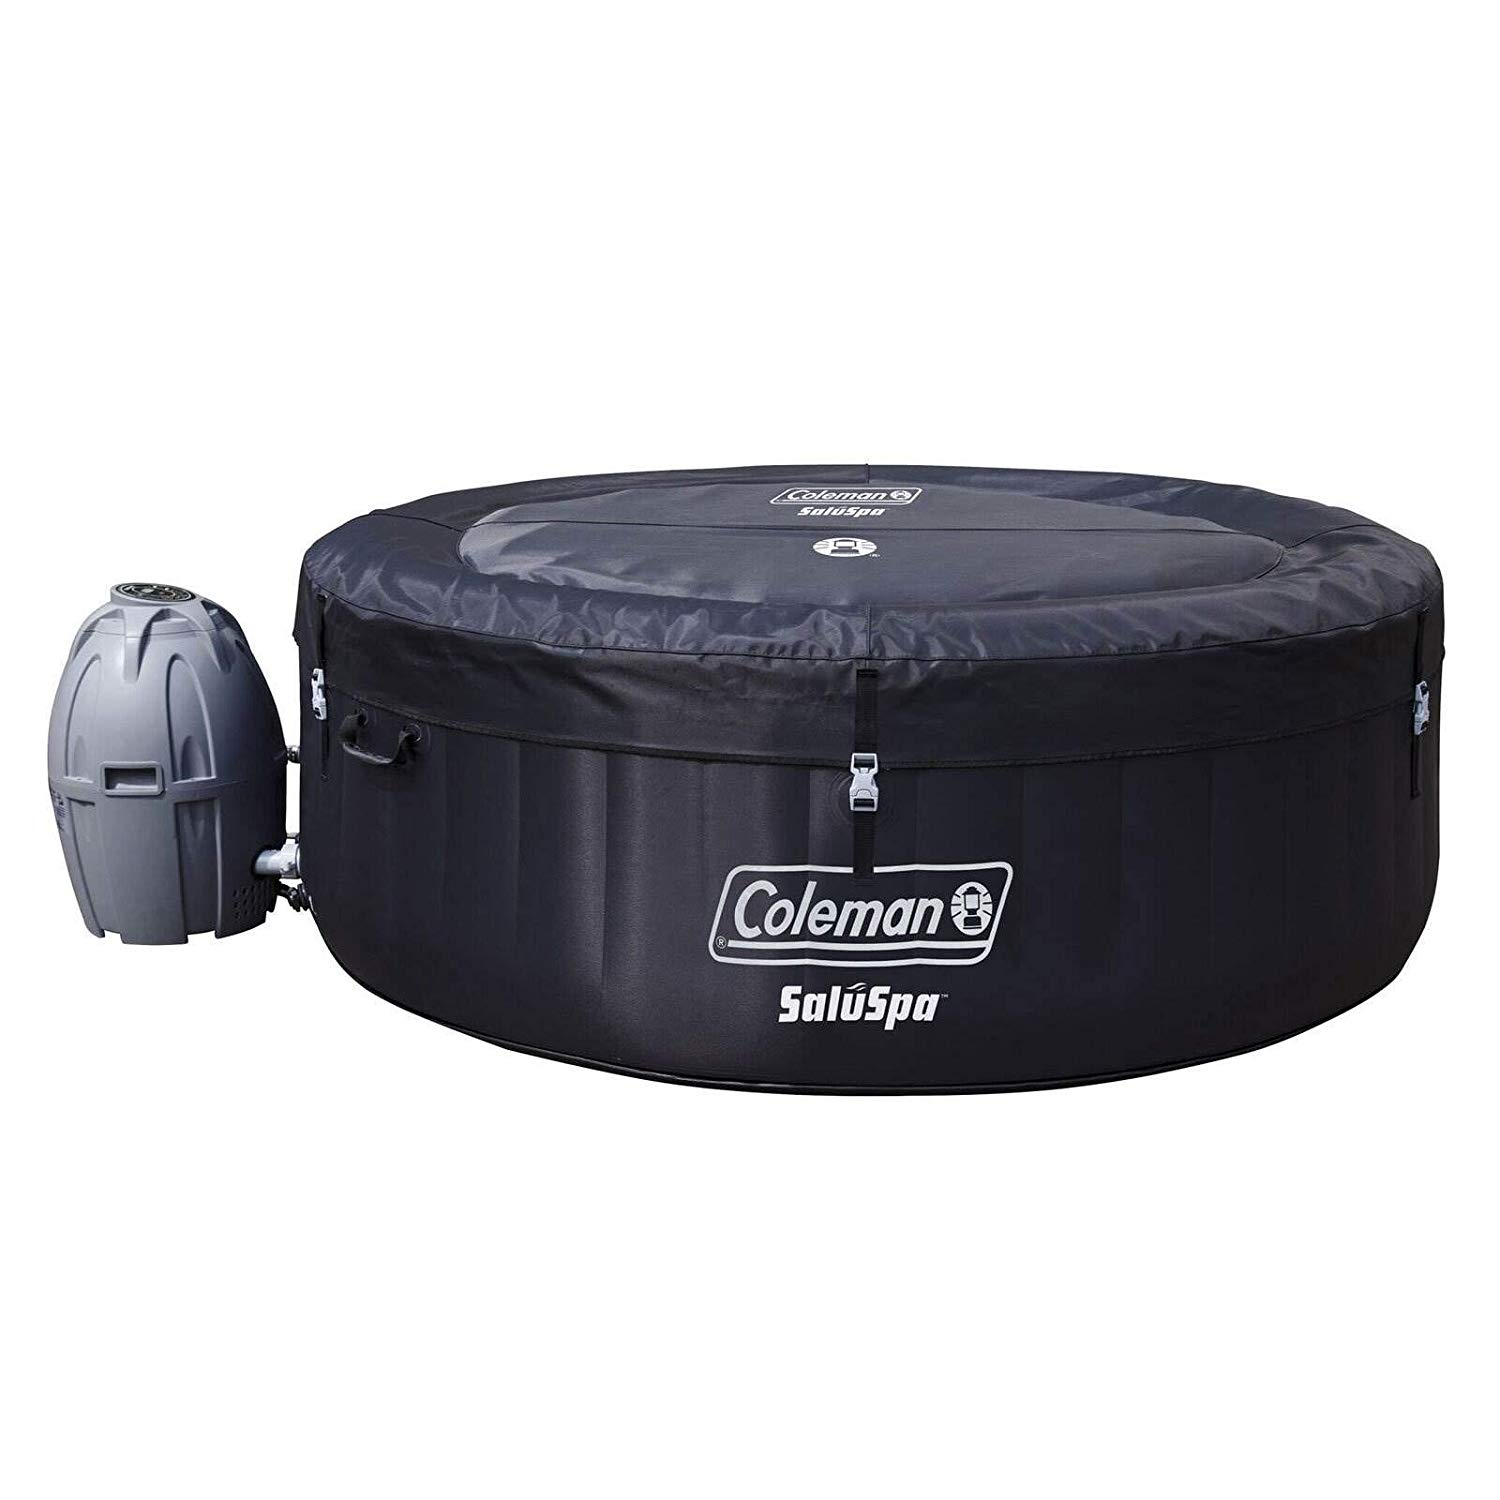 Coleman 71 by 26 Portable Spa Inflatable 4-Person Hot Tub